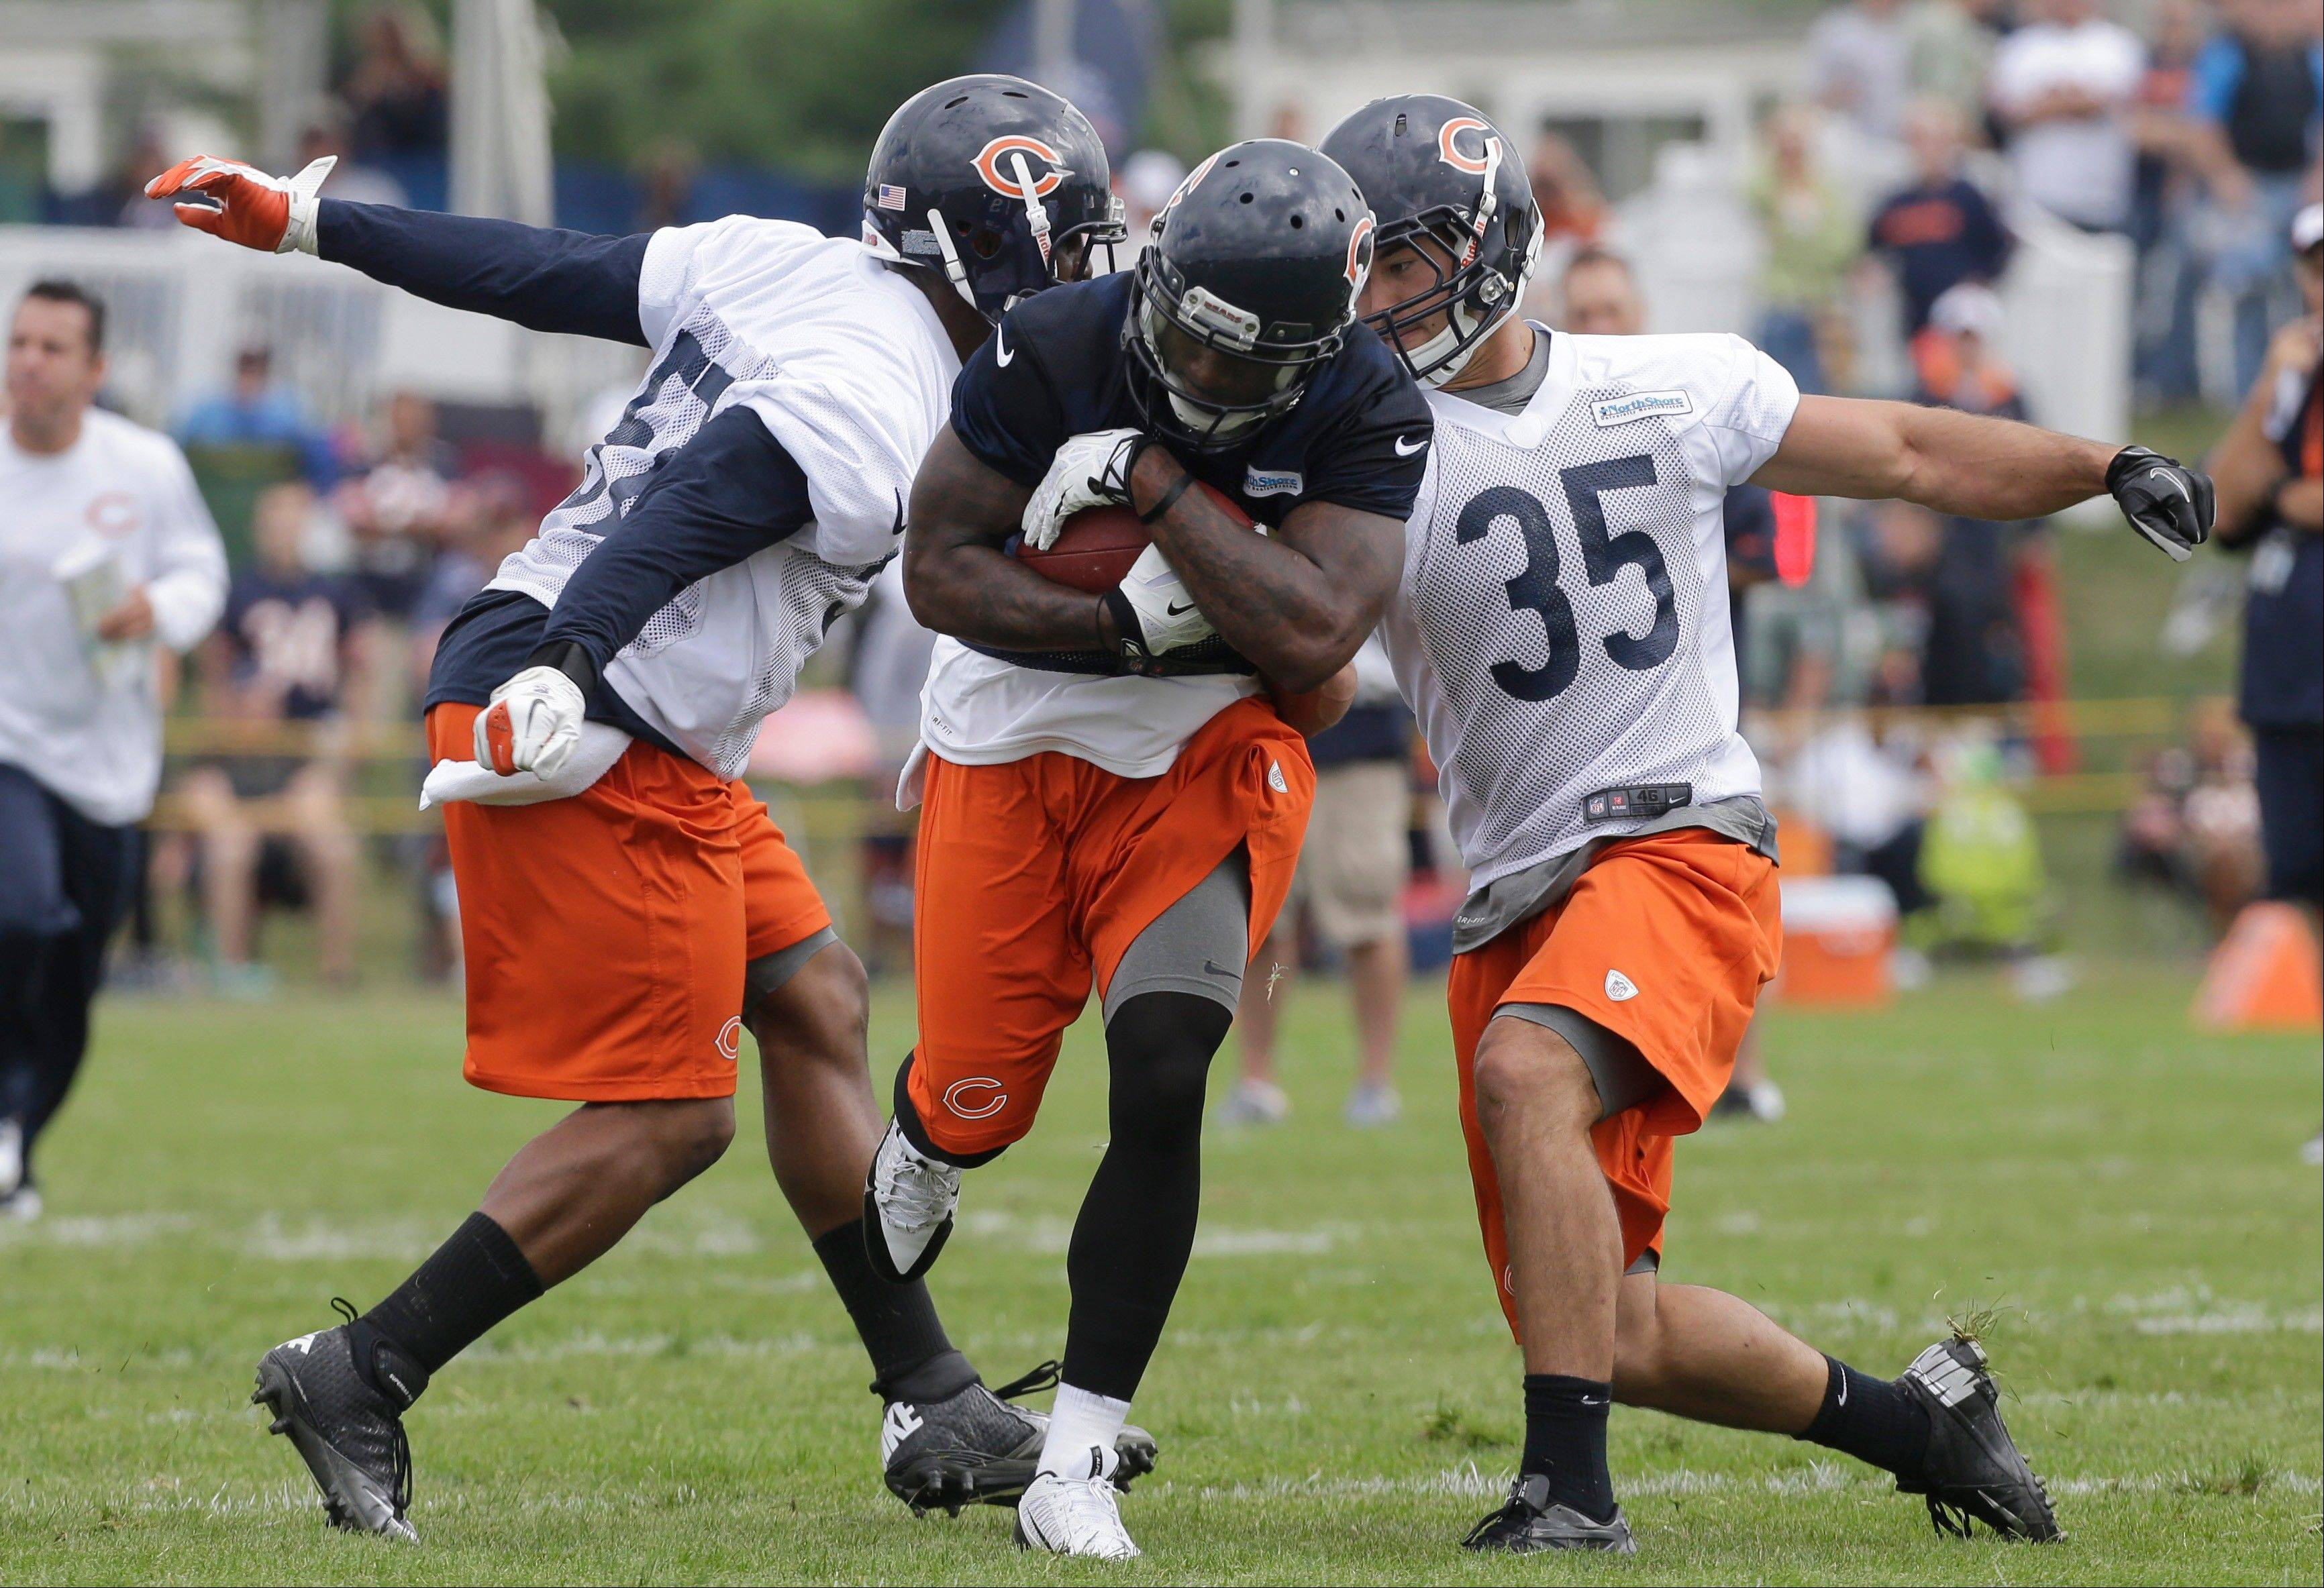 Wide receiver Joe Anderson, who spent most of last season on the Bears' practice squad, has impressed coach Marc Trestman in the early going of training camp.